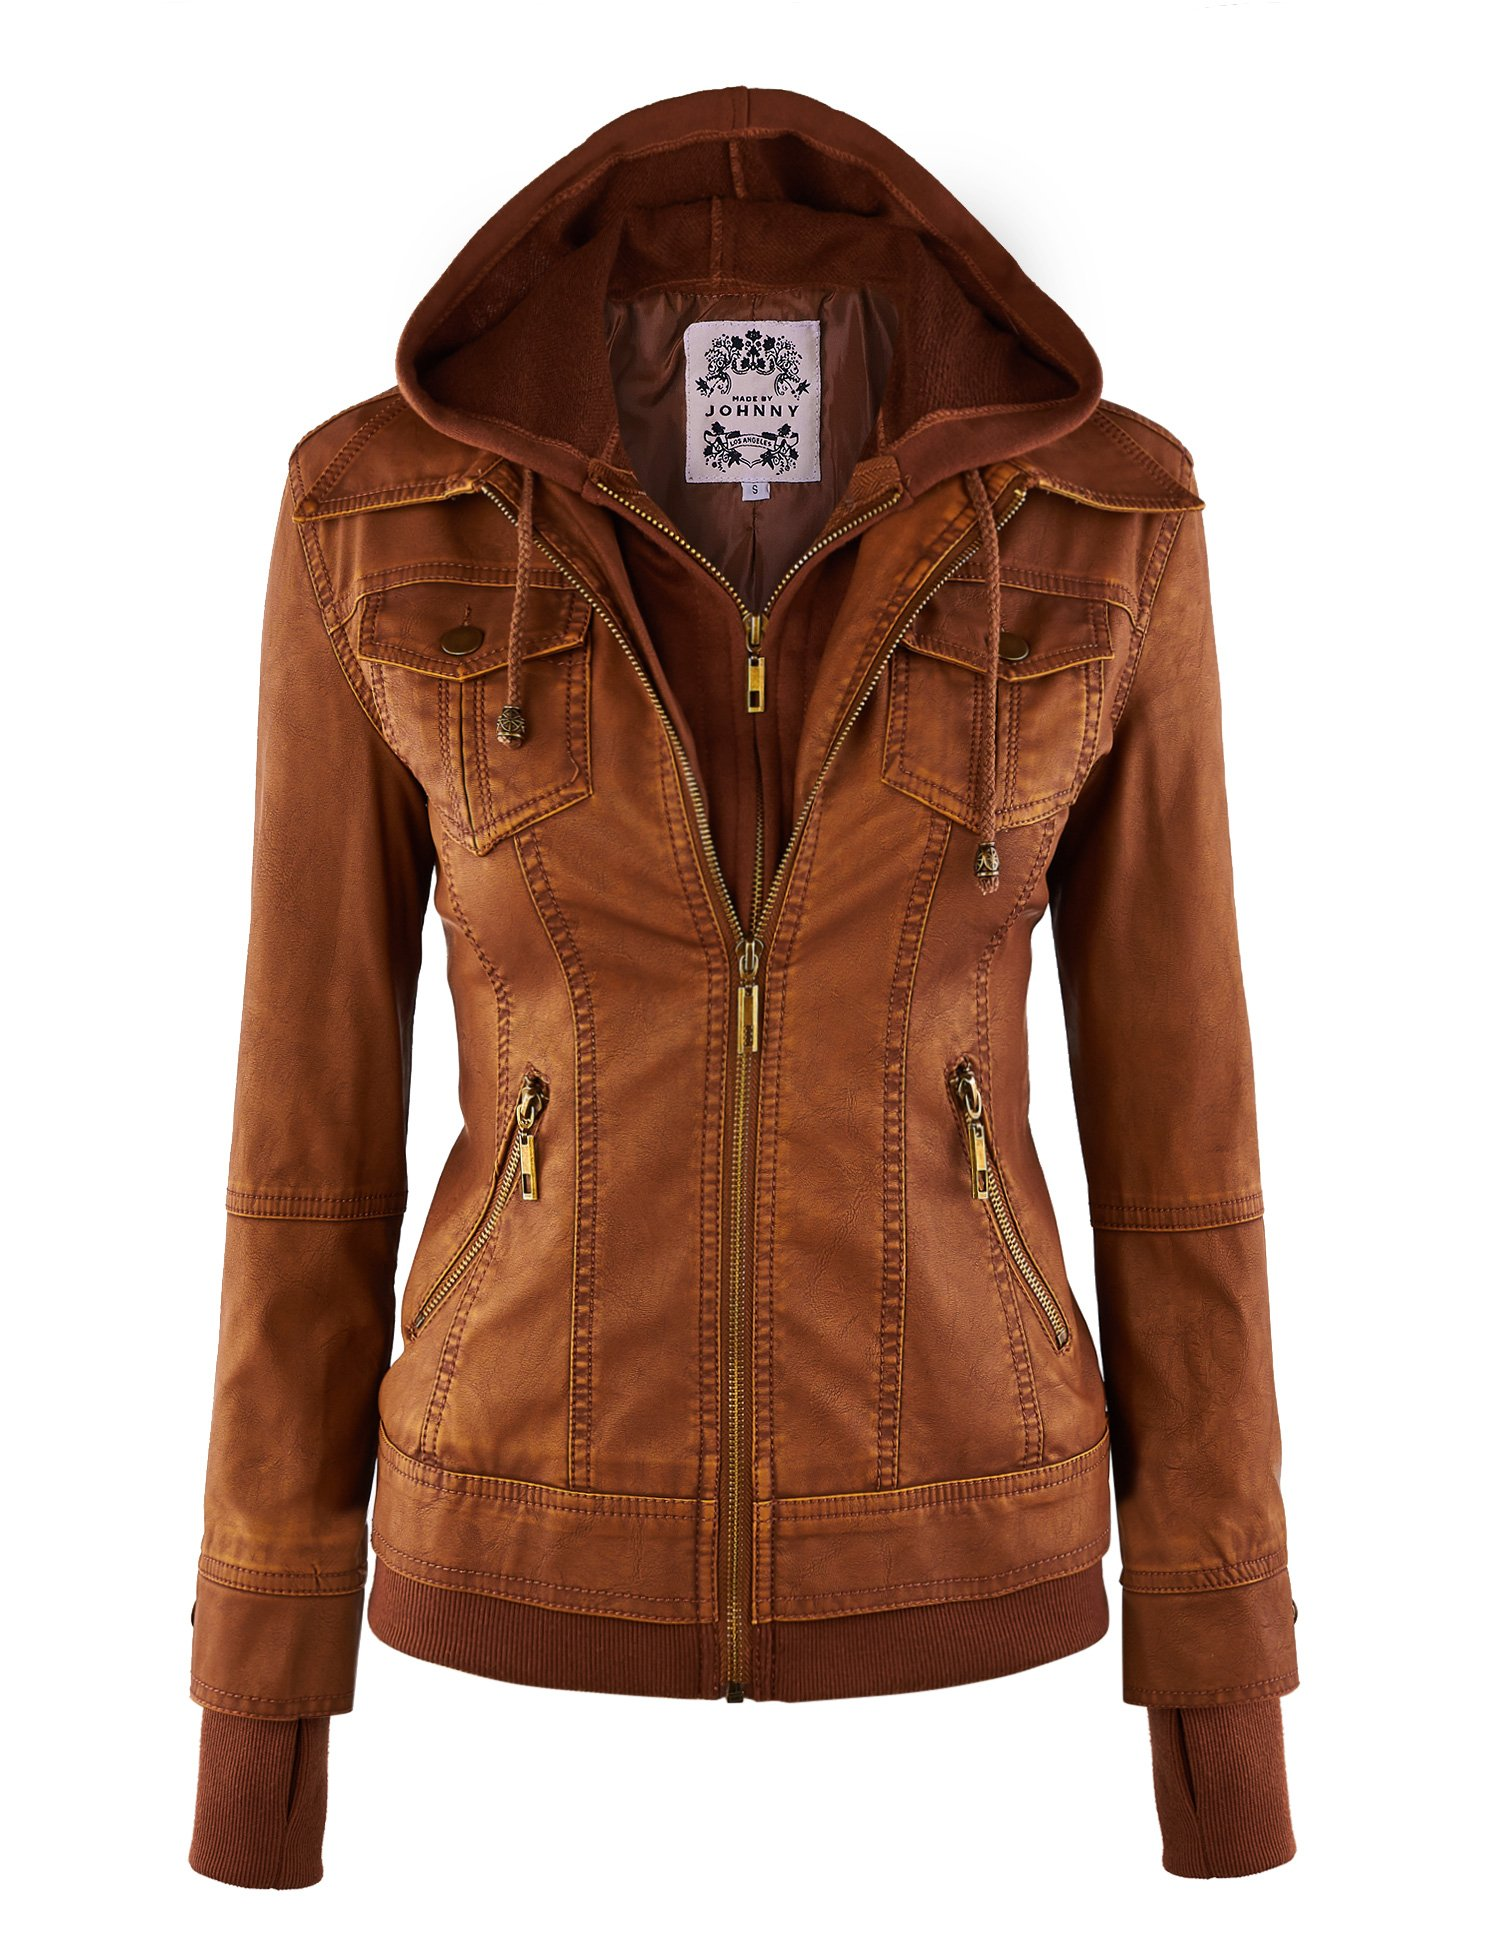 Made By Johnny WJC664 Womens Faux Leather Jacket with Hoodie L CAMEL by Made By Johnny